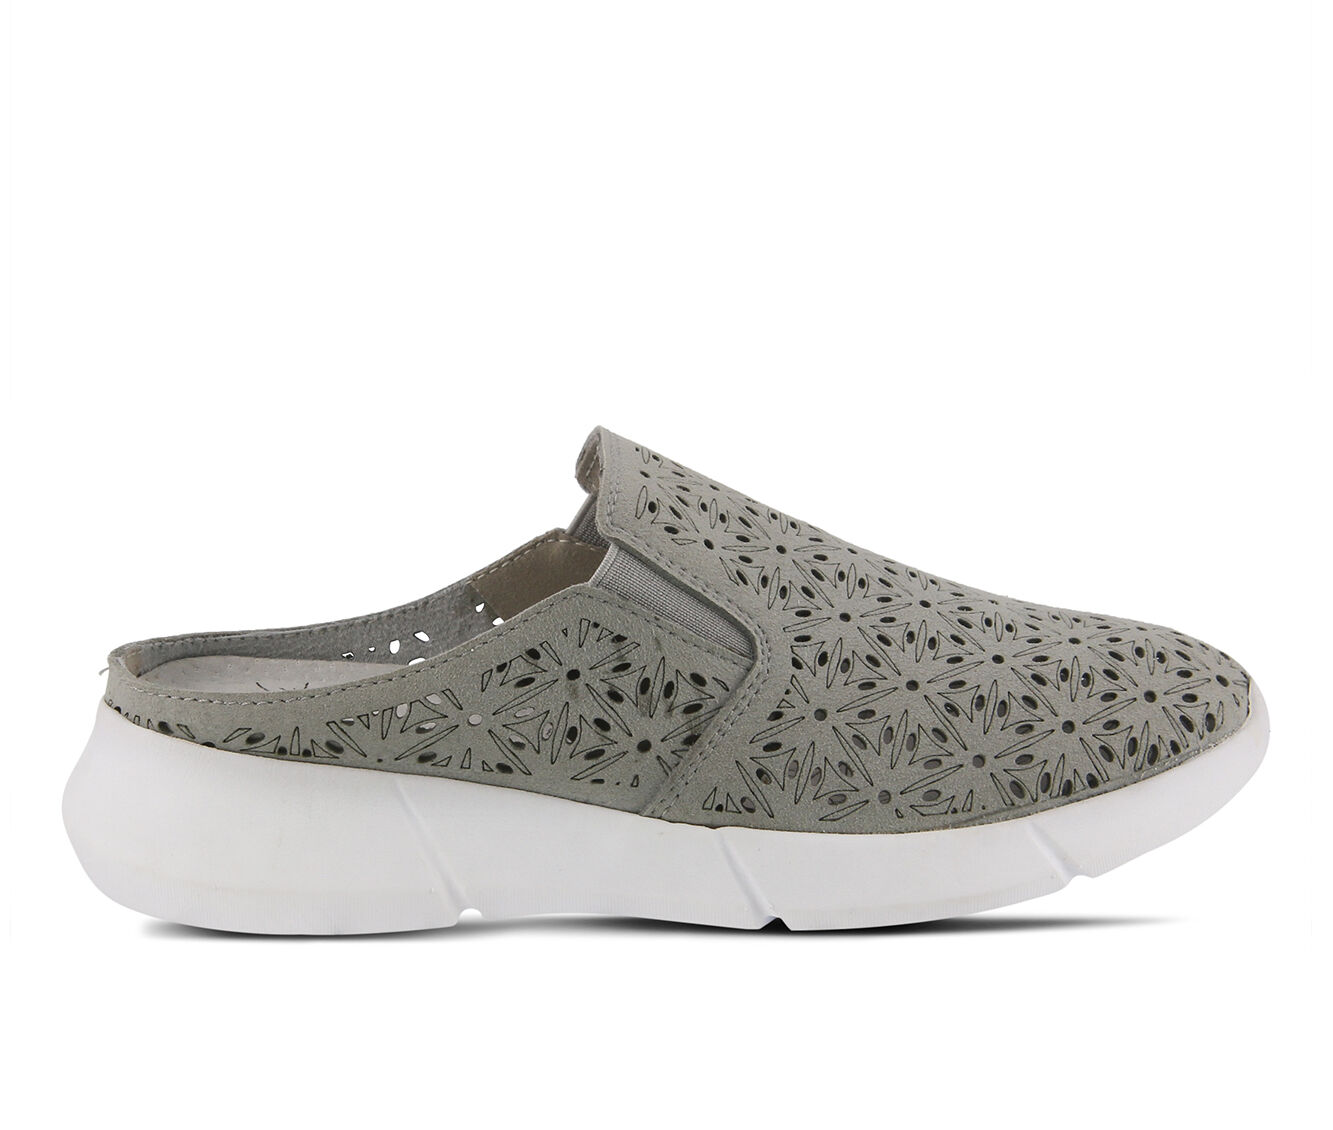 authentic shop Women's SPRING STEP Softsidele Grey